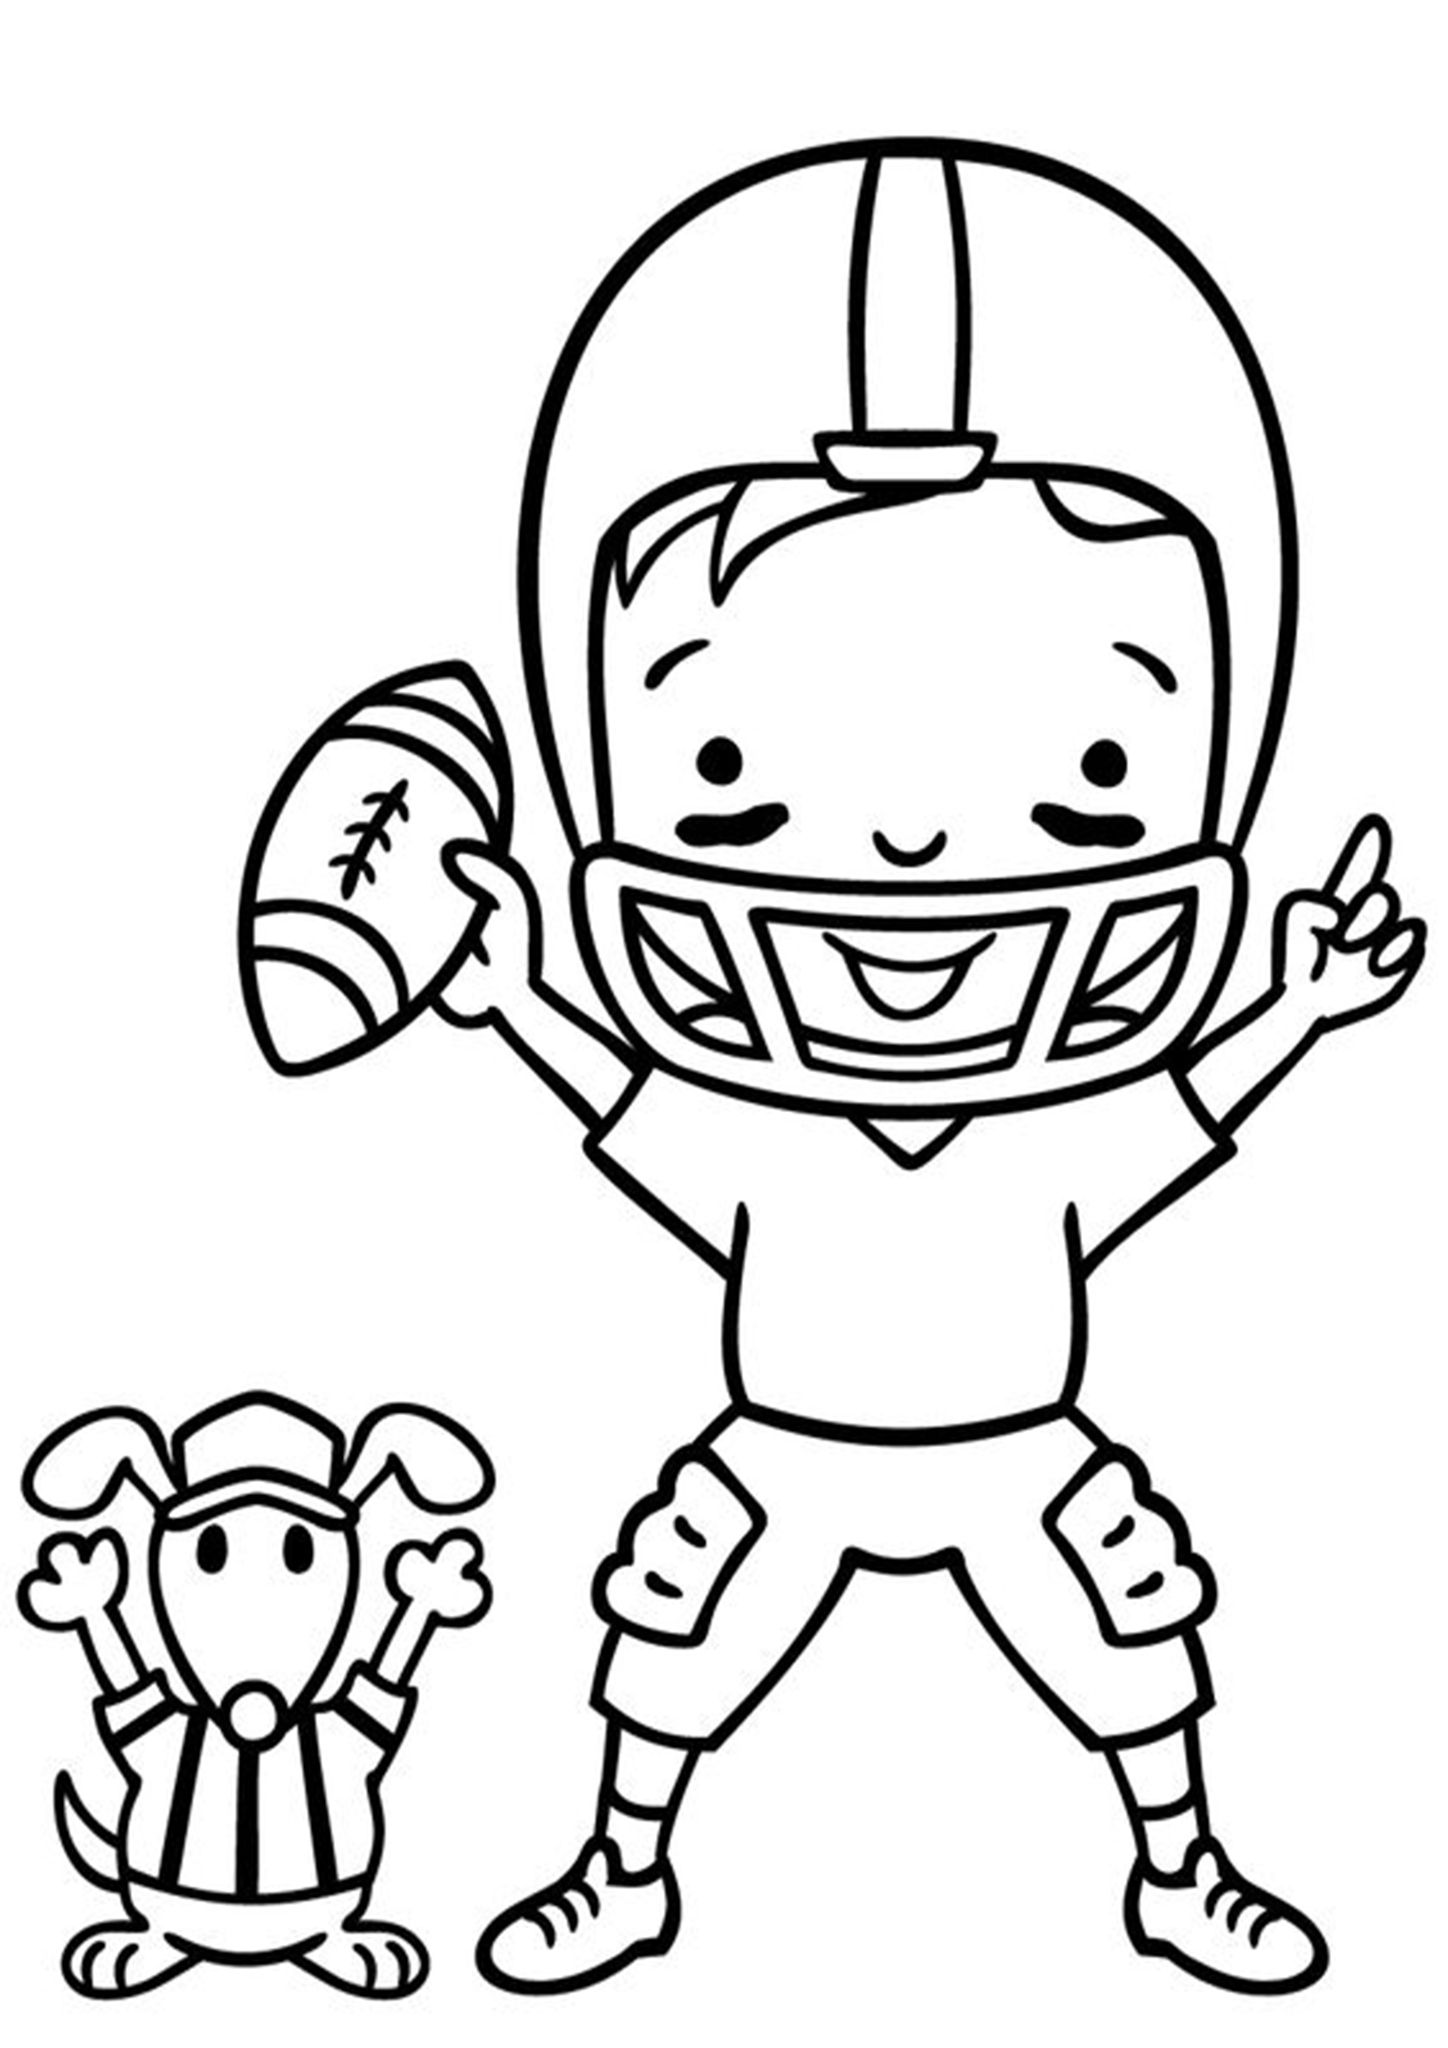 Free Easy To Print Football Coloring Pages Football Coloring Pages Digi Stamps Coloring Pages [ 2048 x 1448 Pixel ]